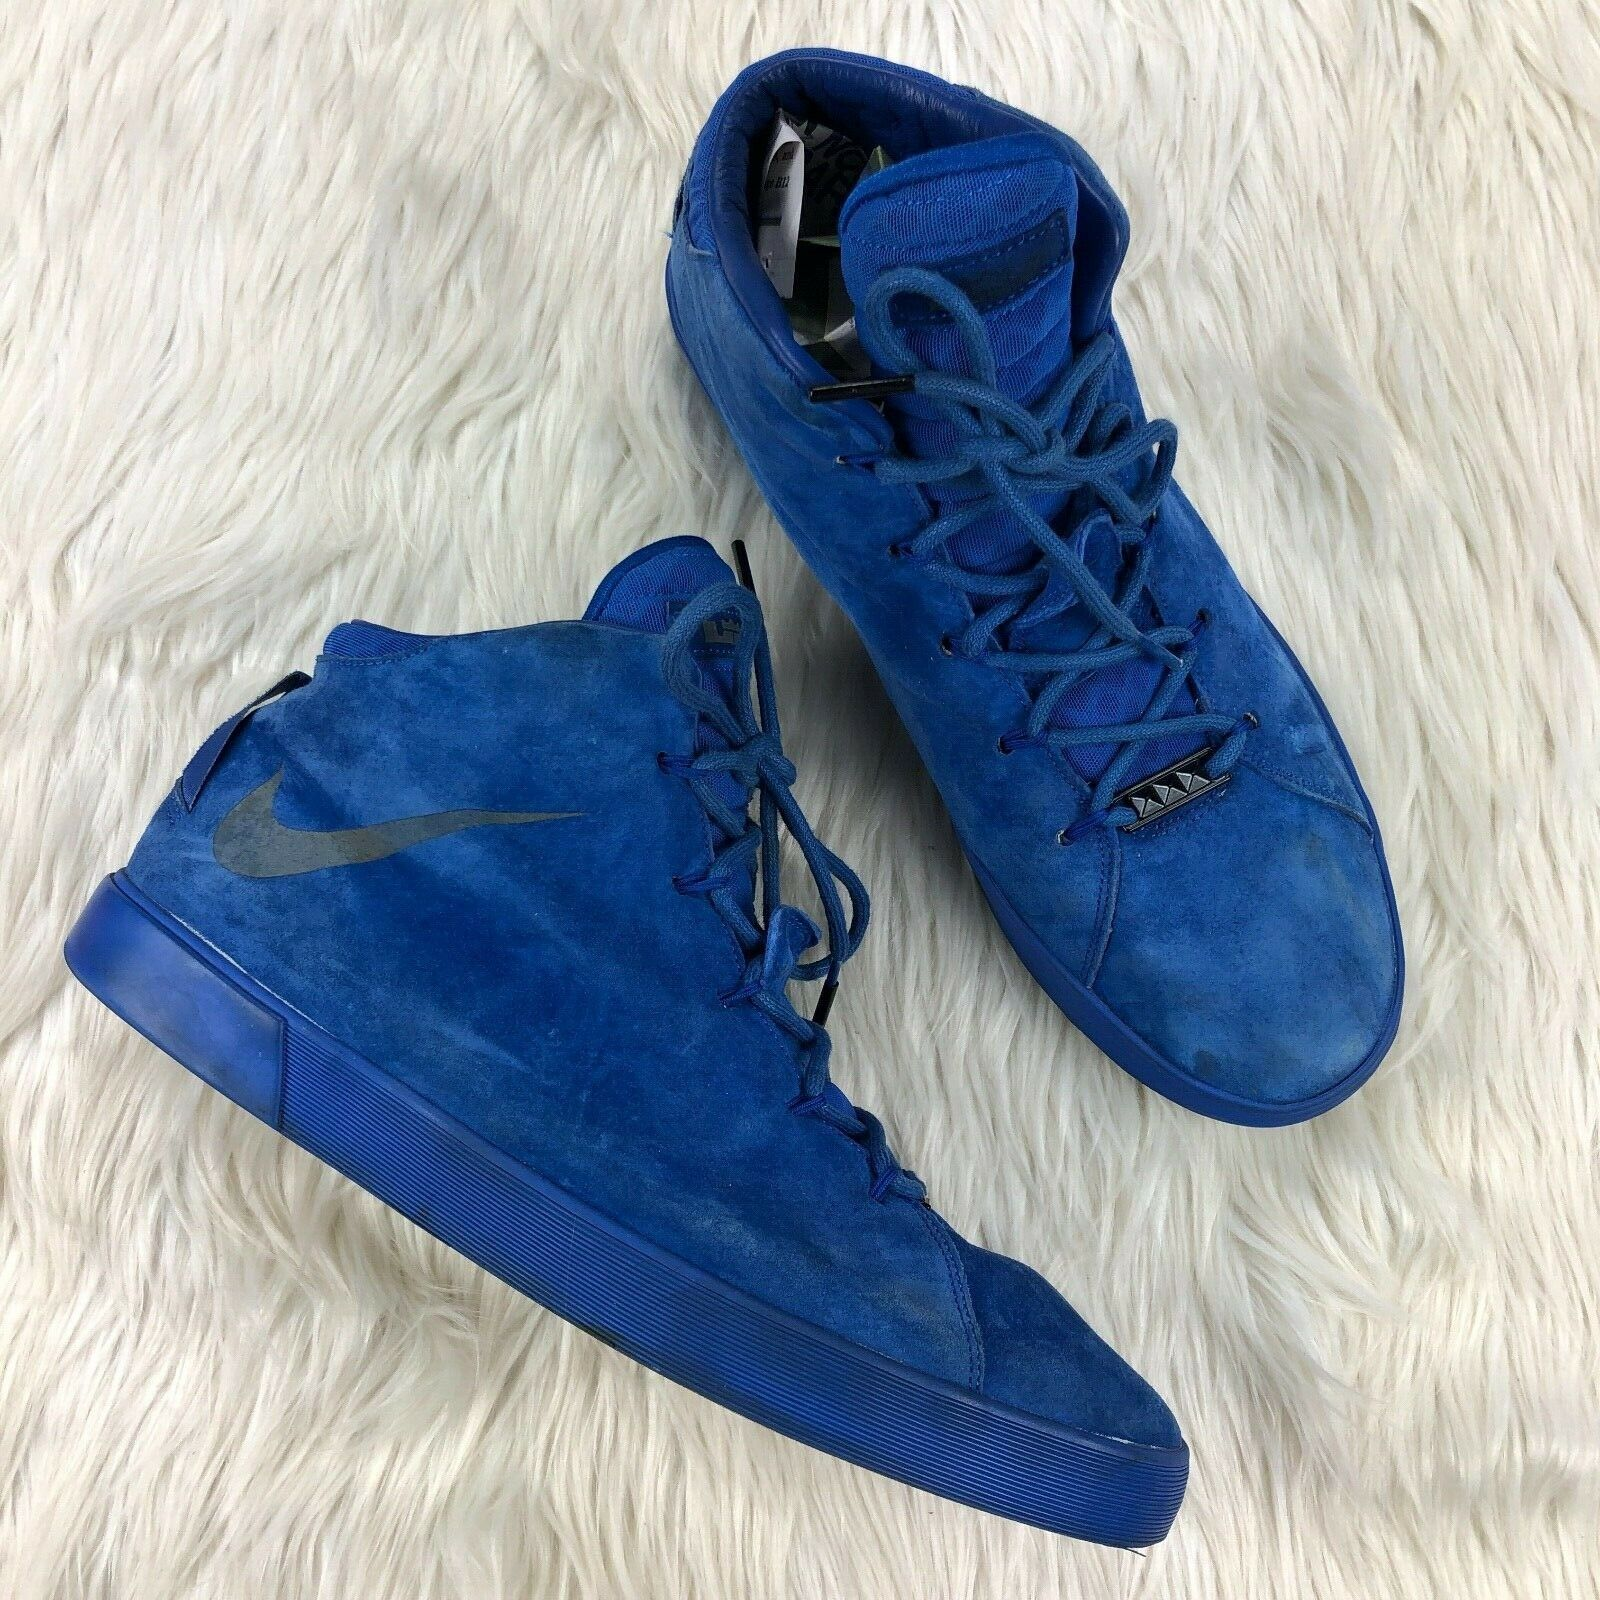 Nike Men's 13 bluee Suede Lebron XII NSW Lifestyle QS High Top Sneaker